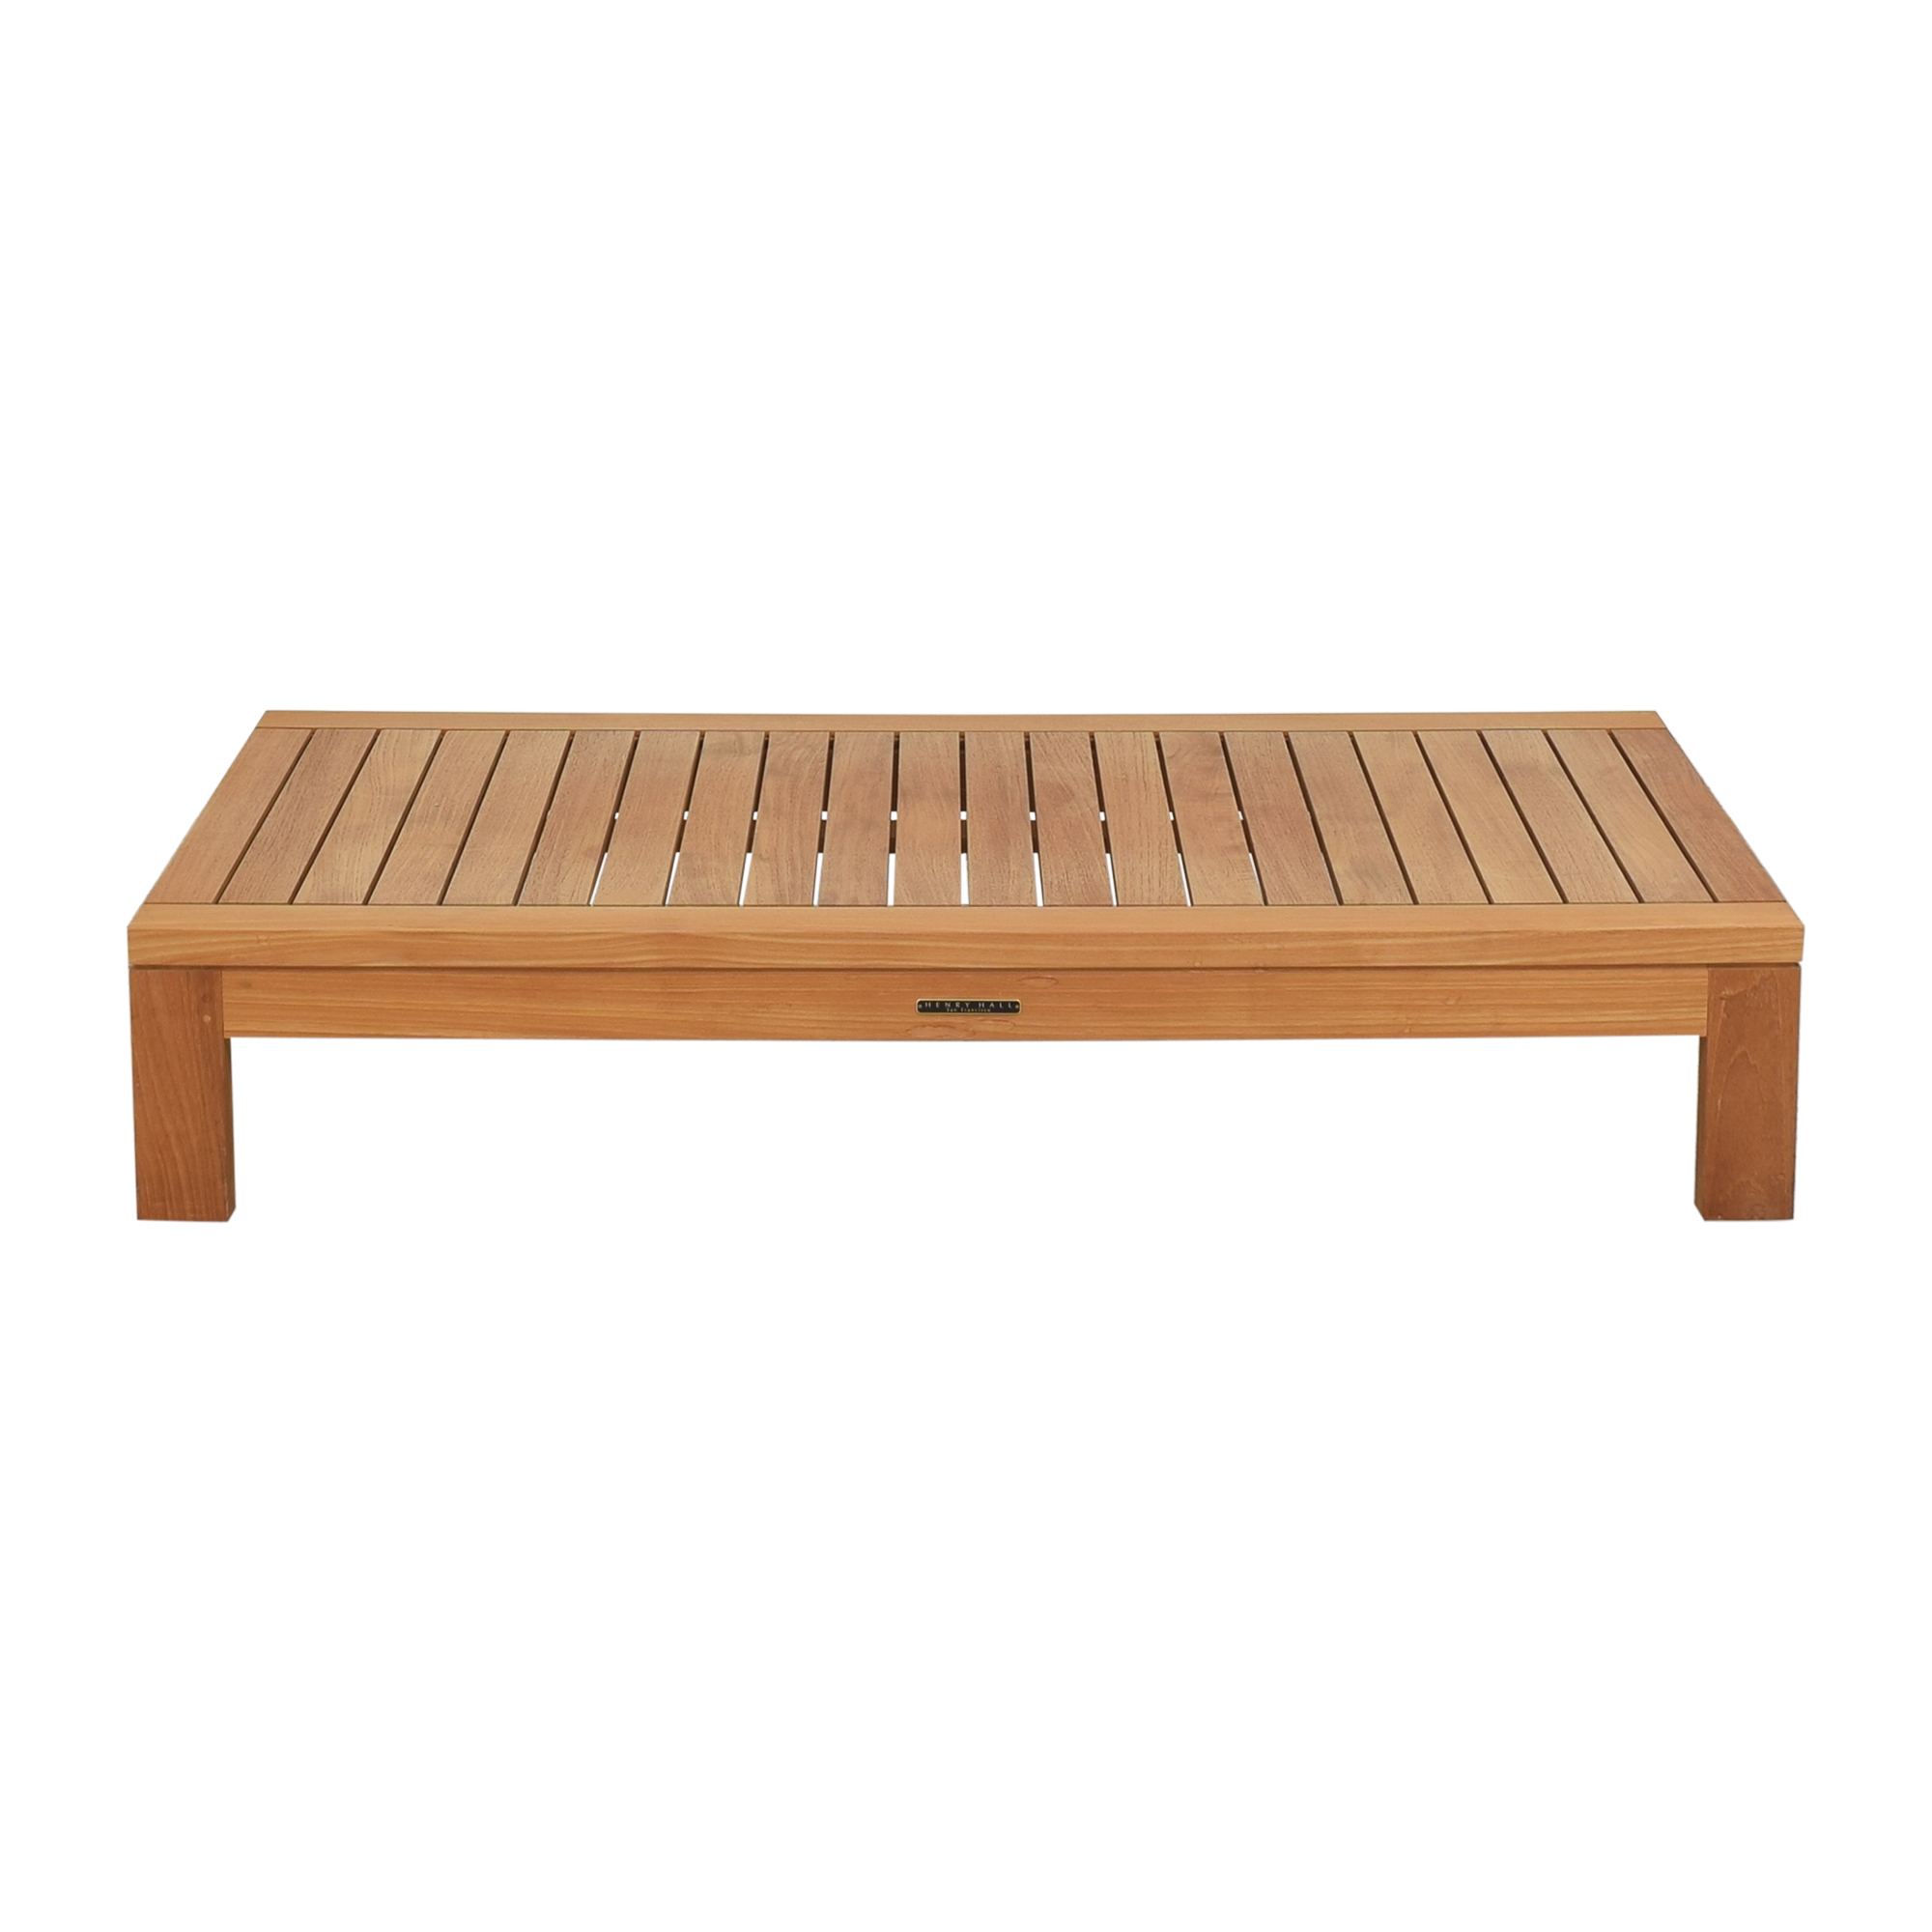 Henry Hall Designs Tru Pure Coffee Table / Tables